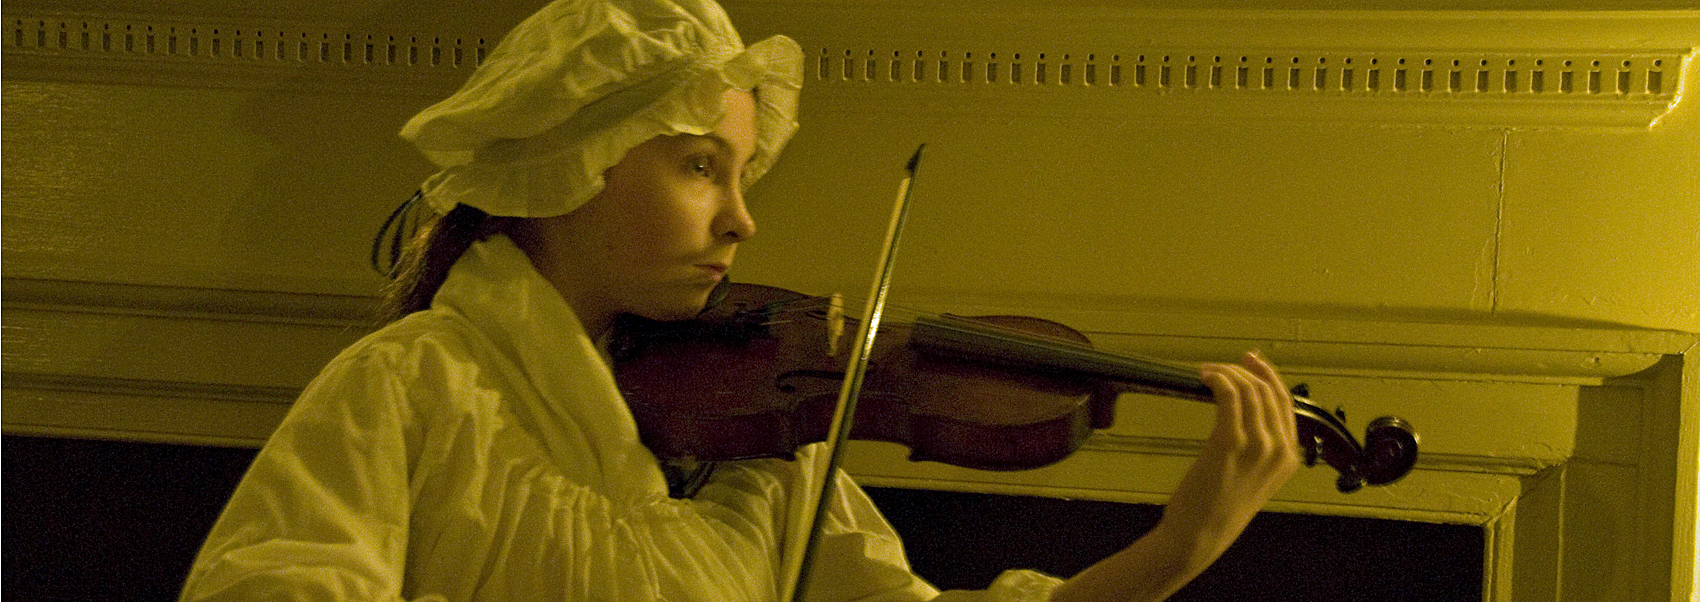 A docent in nightgown plays violin